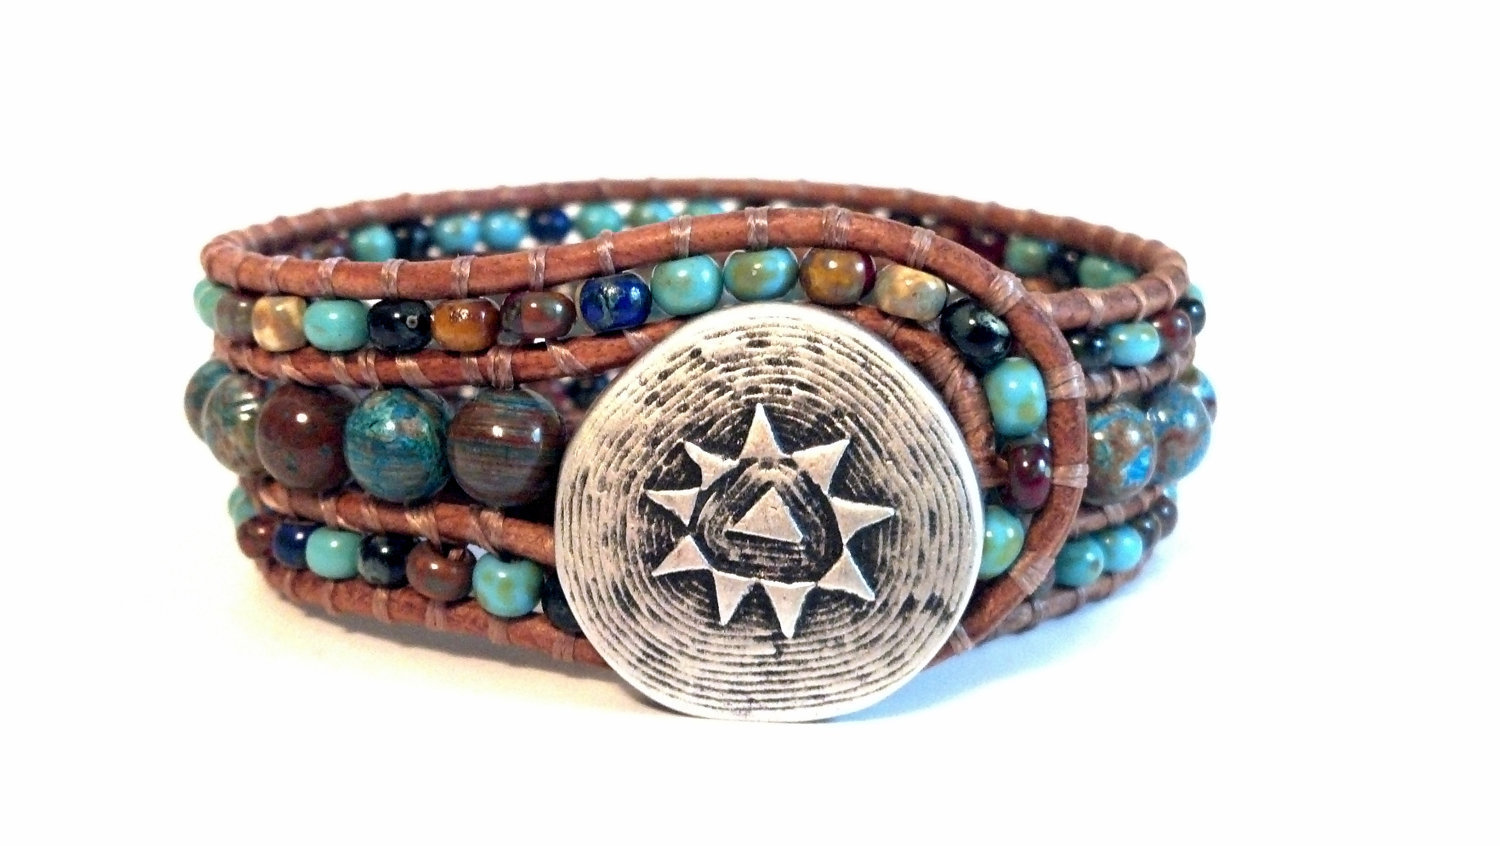 Mosaic Cuff, Beaded Leather Cuff Bracelet, Southwest Chic, Chan Luu Inspired, PZW071